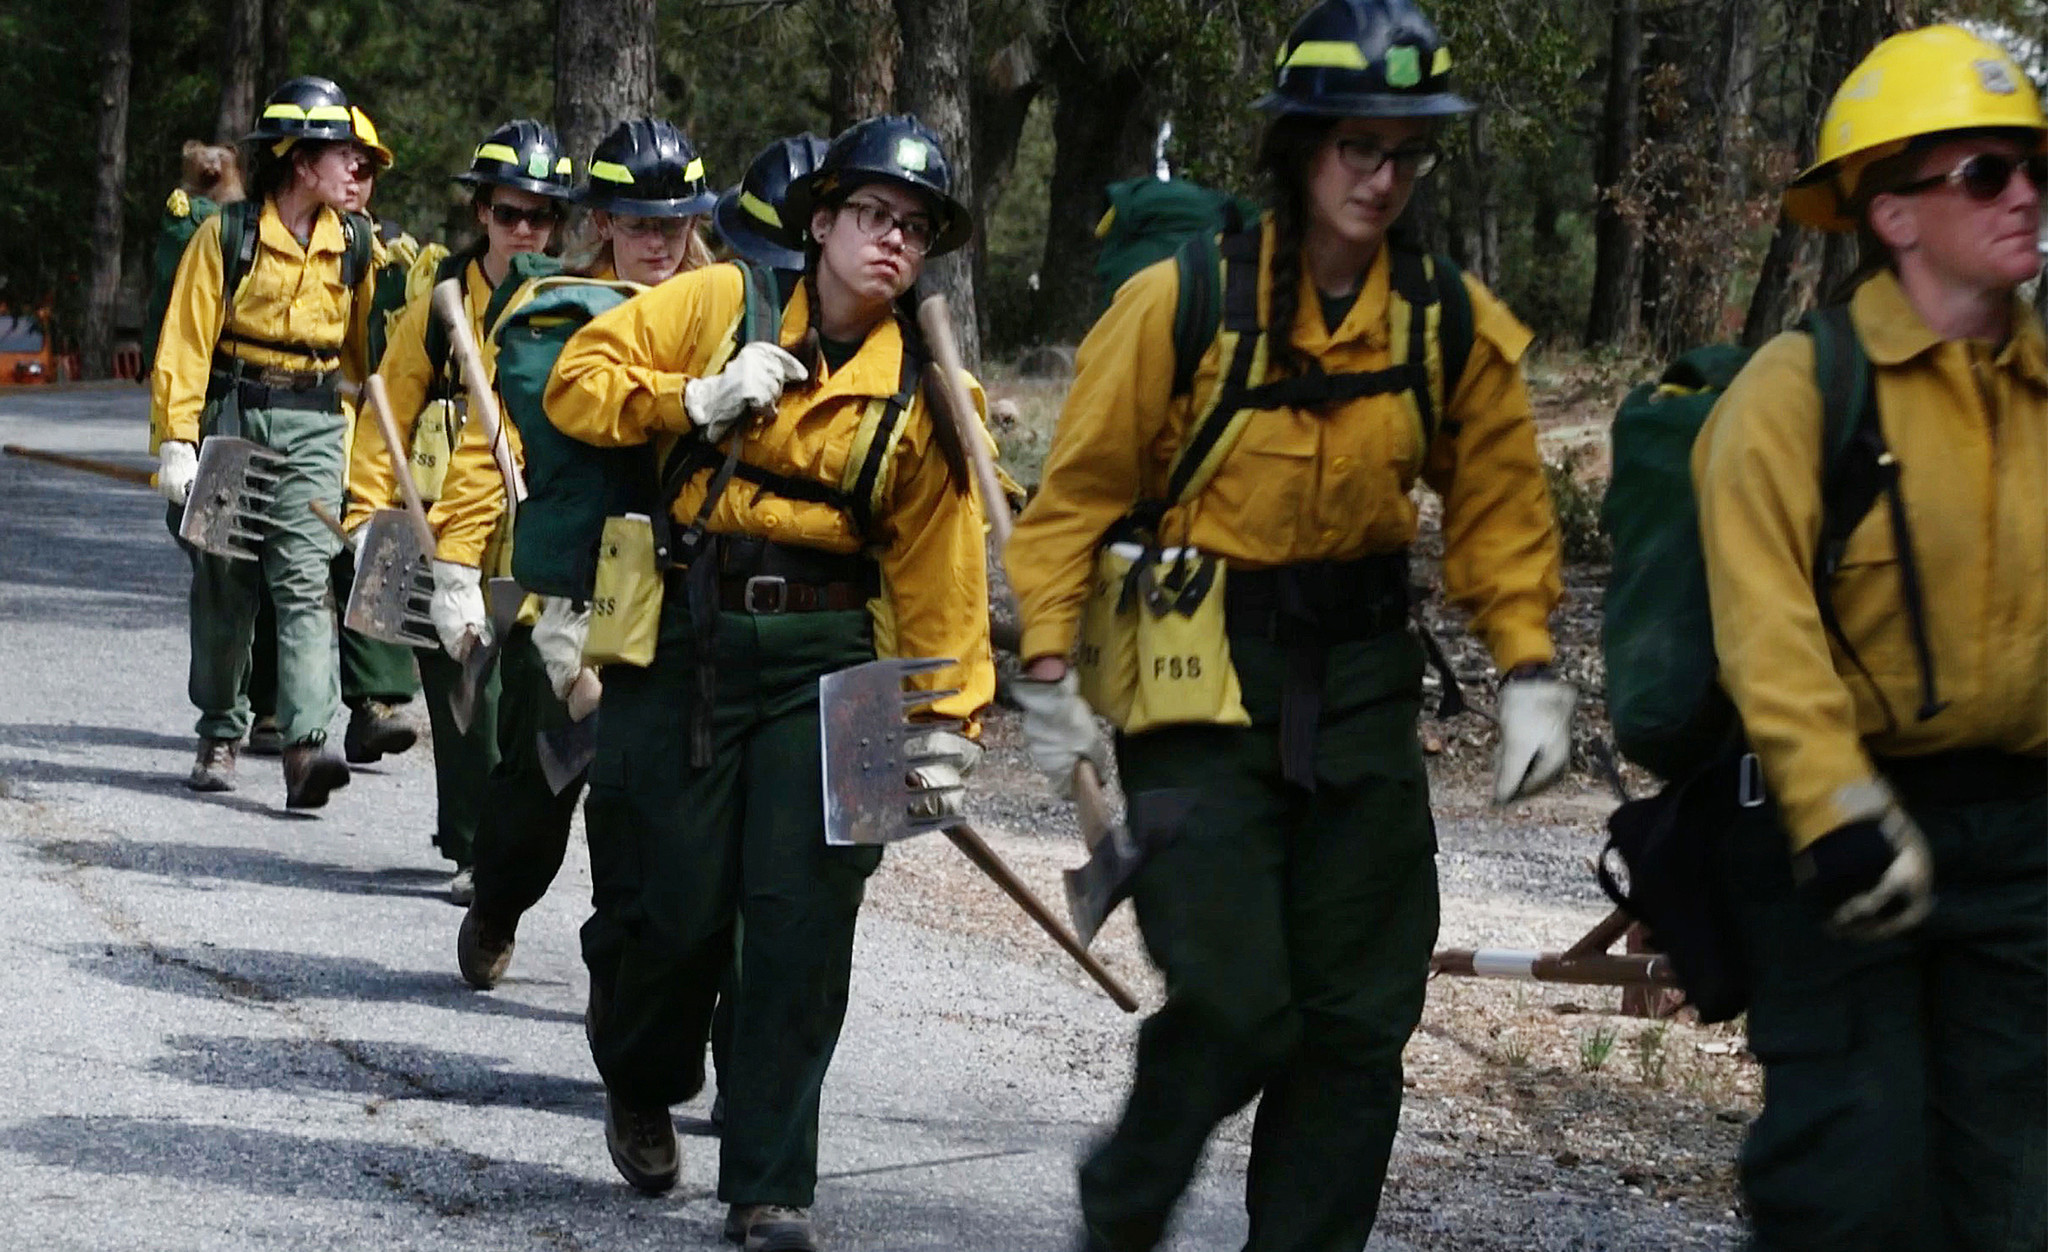 Trainees line up for their final test. The Forest Service's program offers women a chance to launch new firefighting careers.